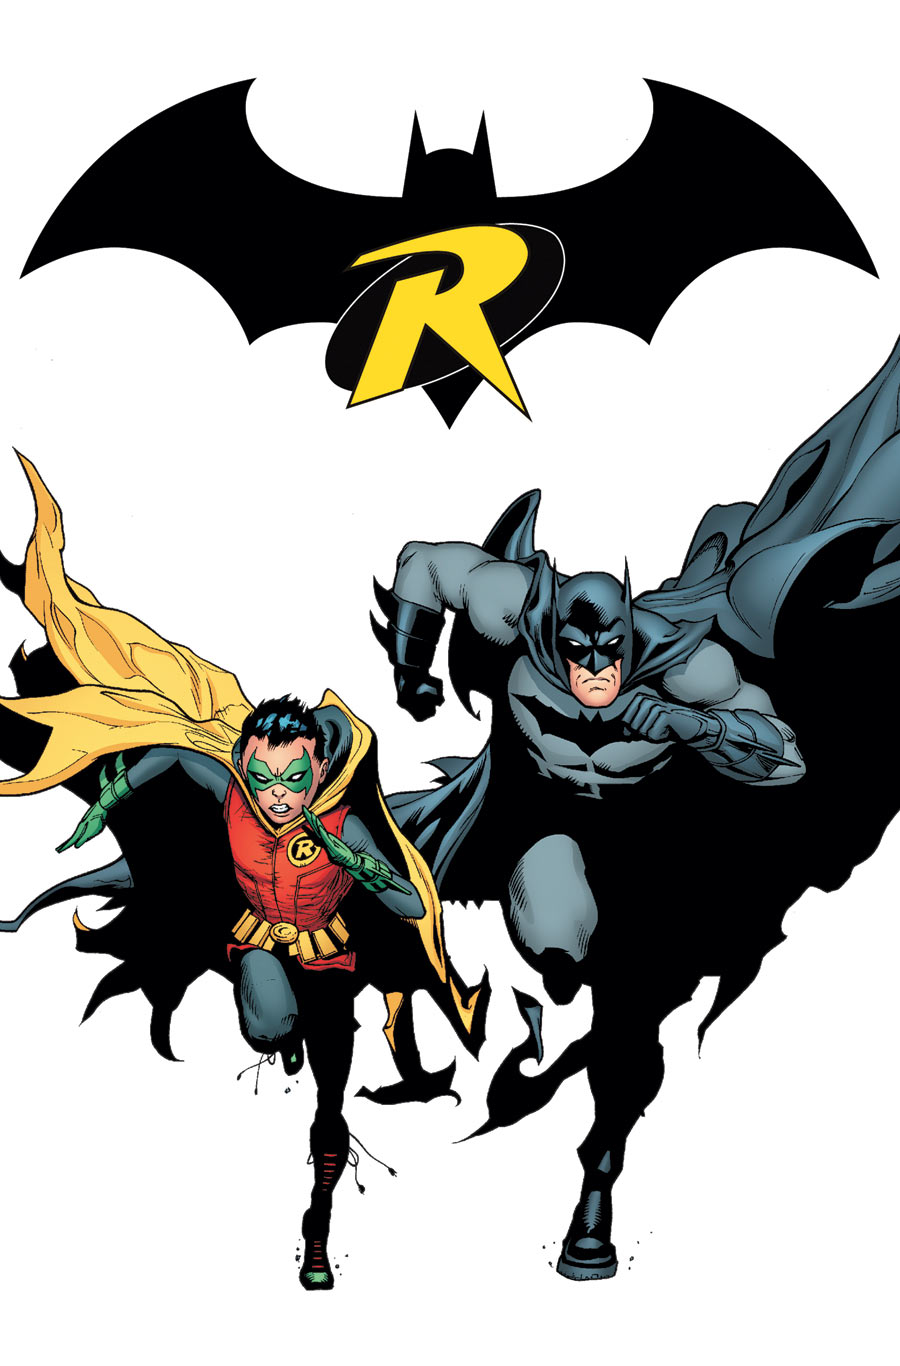 Batman+and+robin+symbol+clip+art